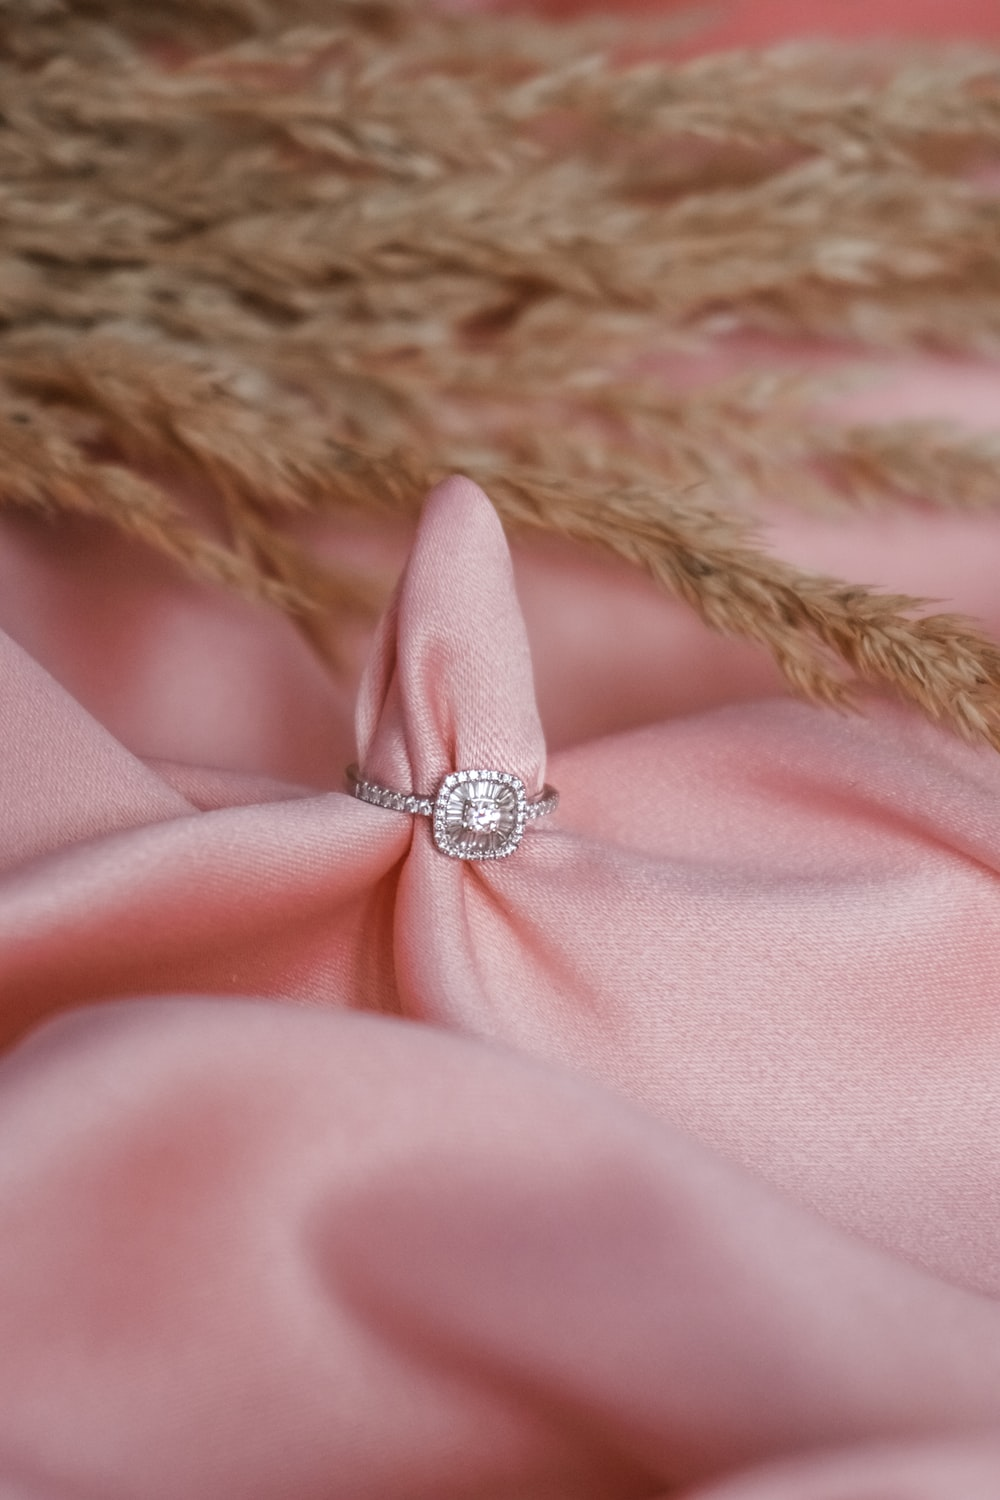 pink textile with silver diamond ring